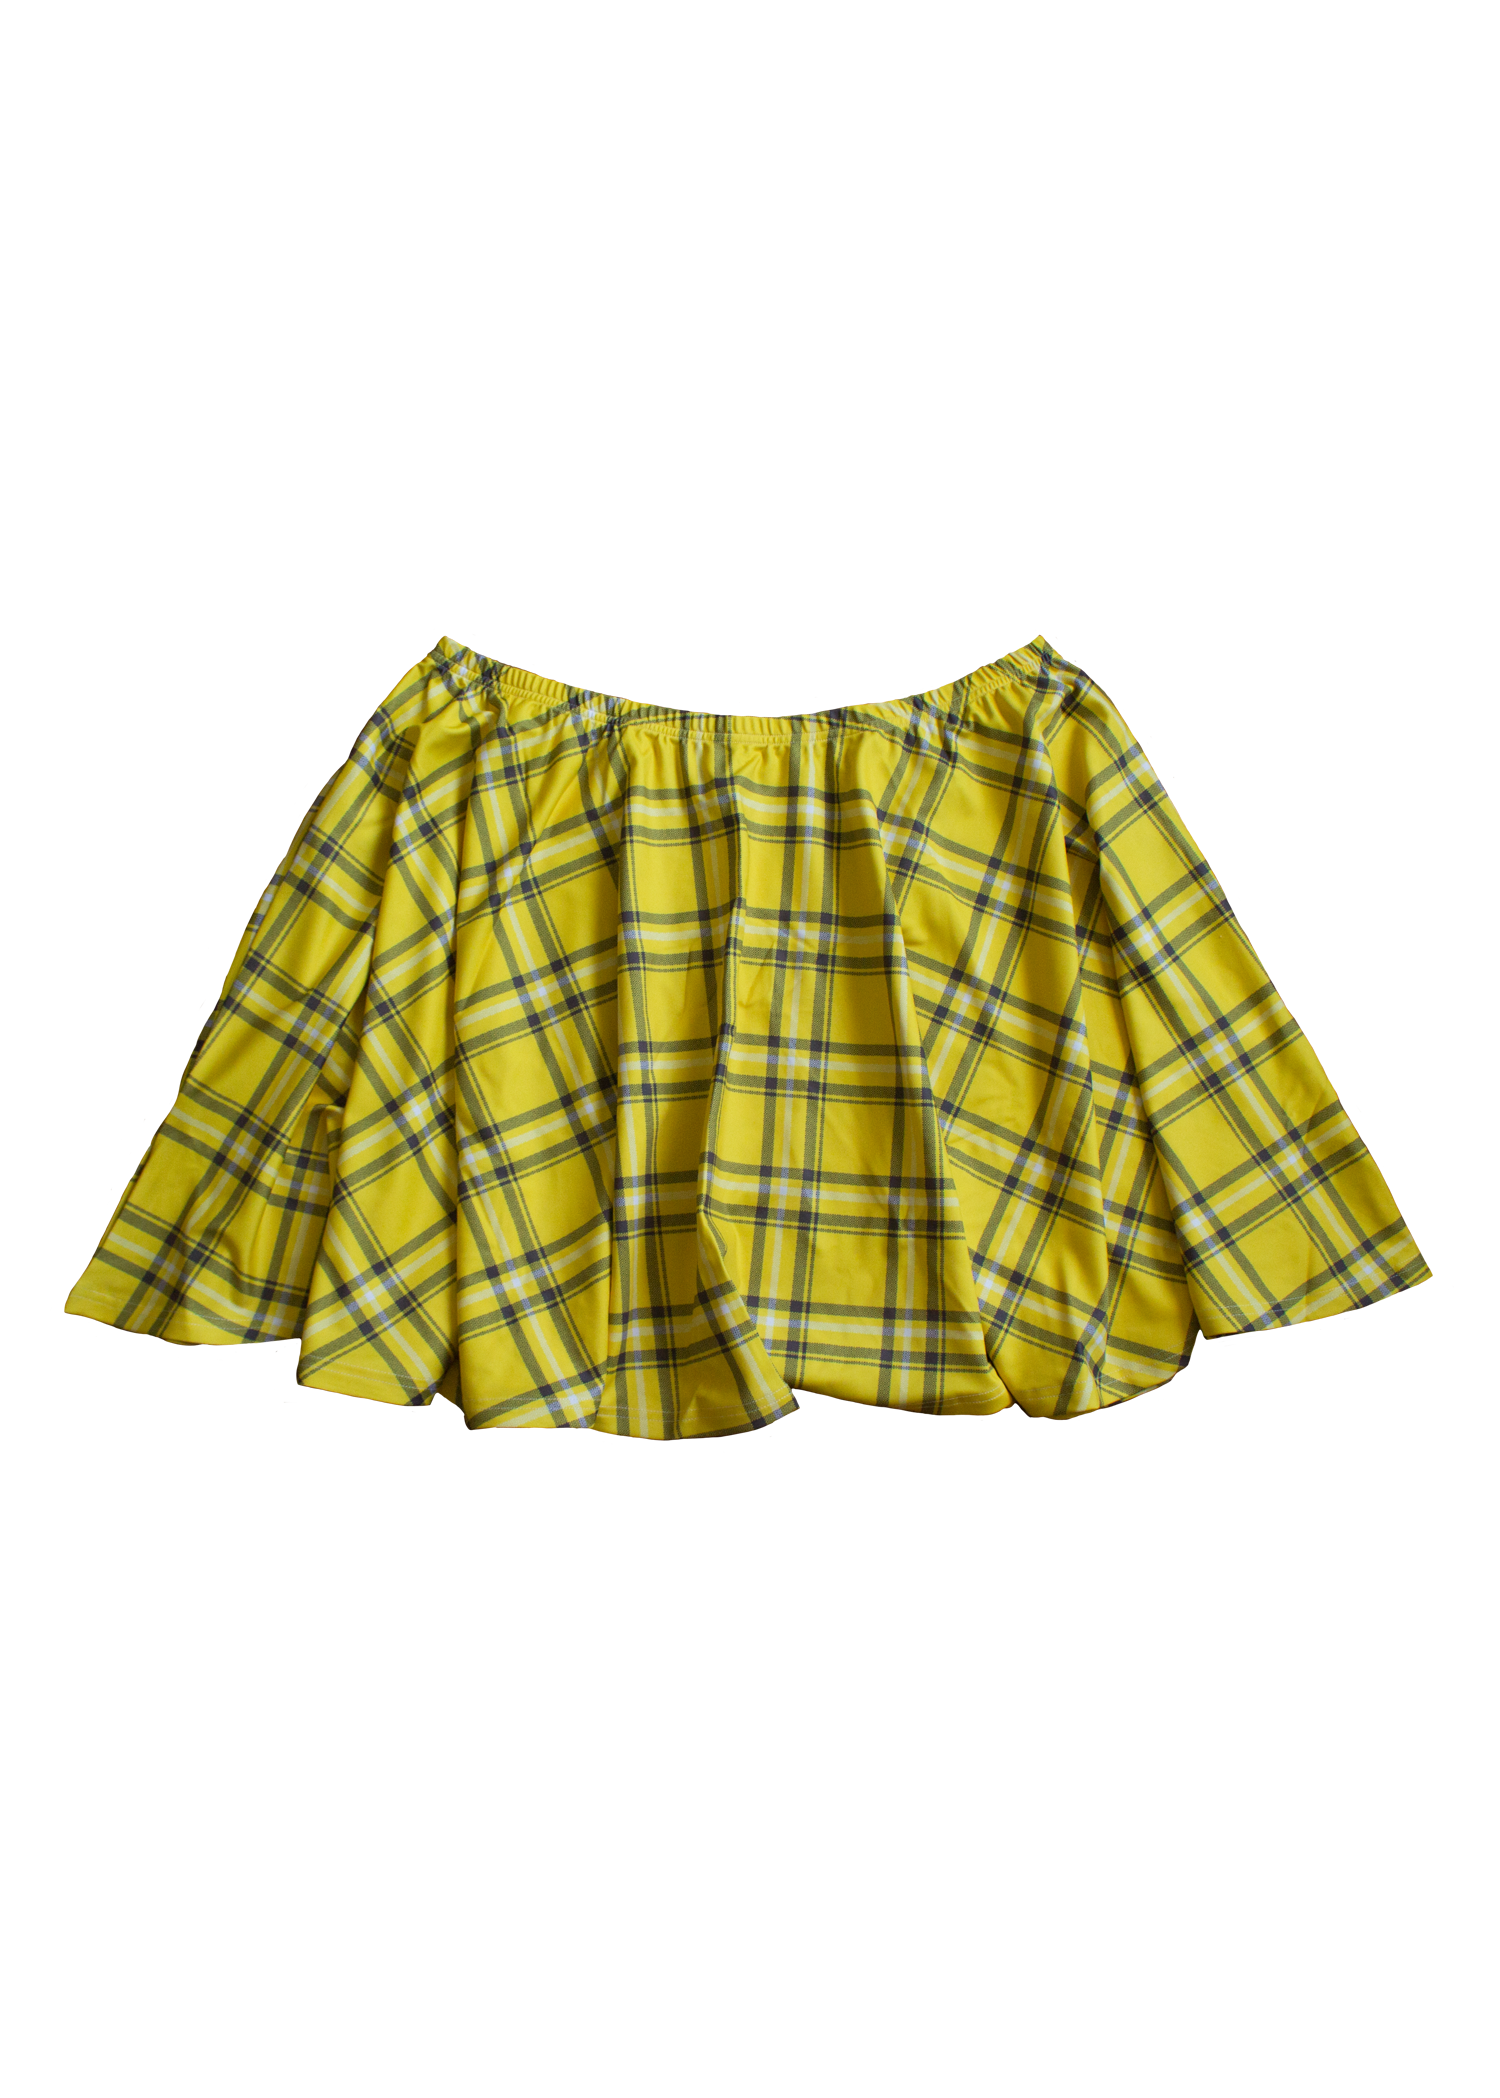 clueless plaid skater skirt